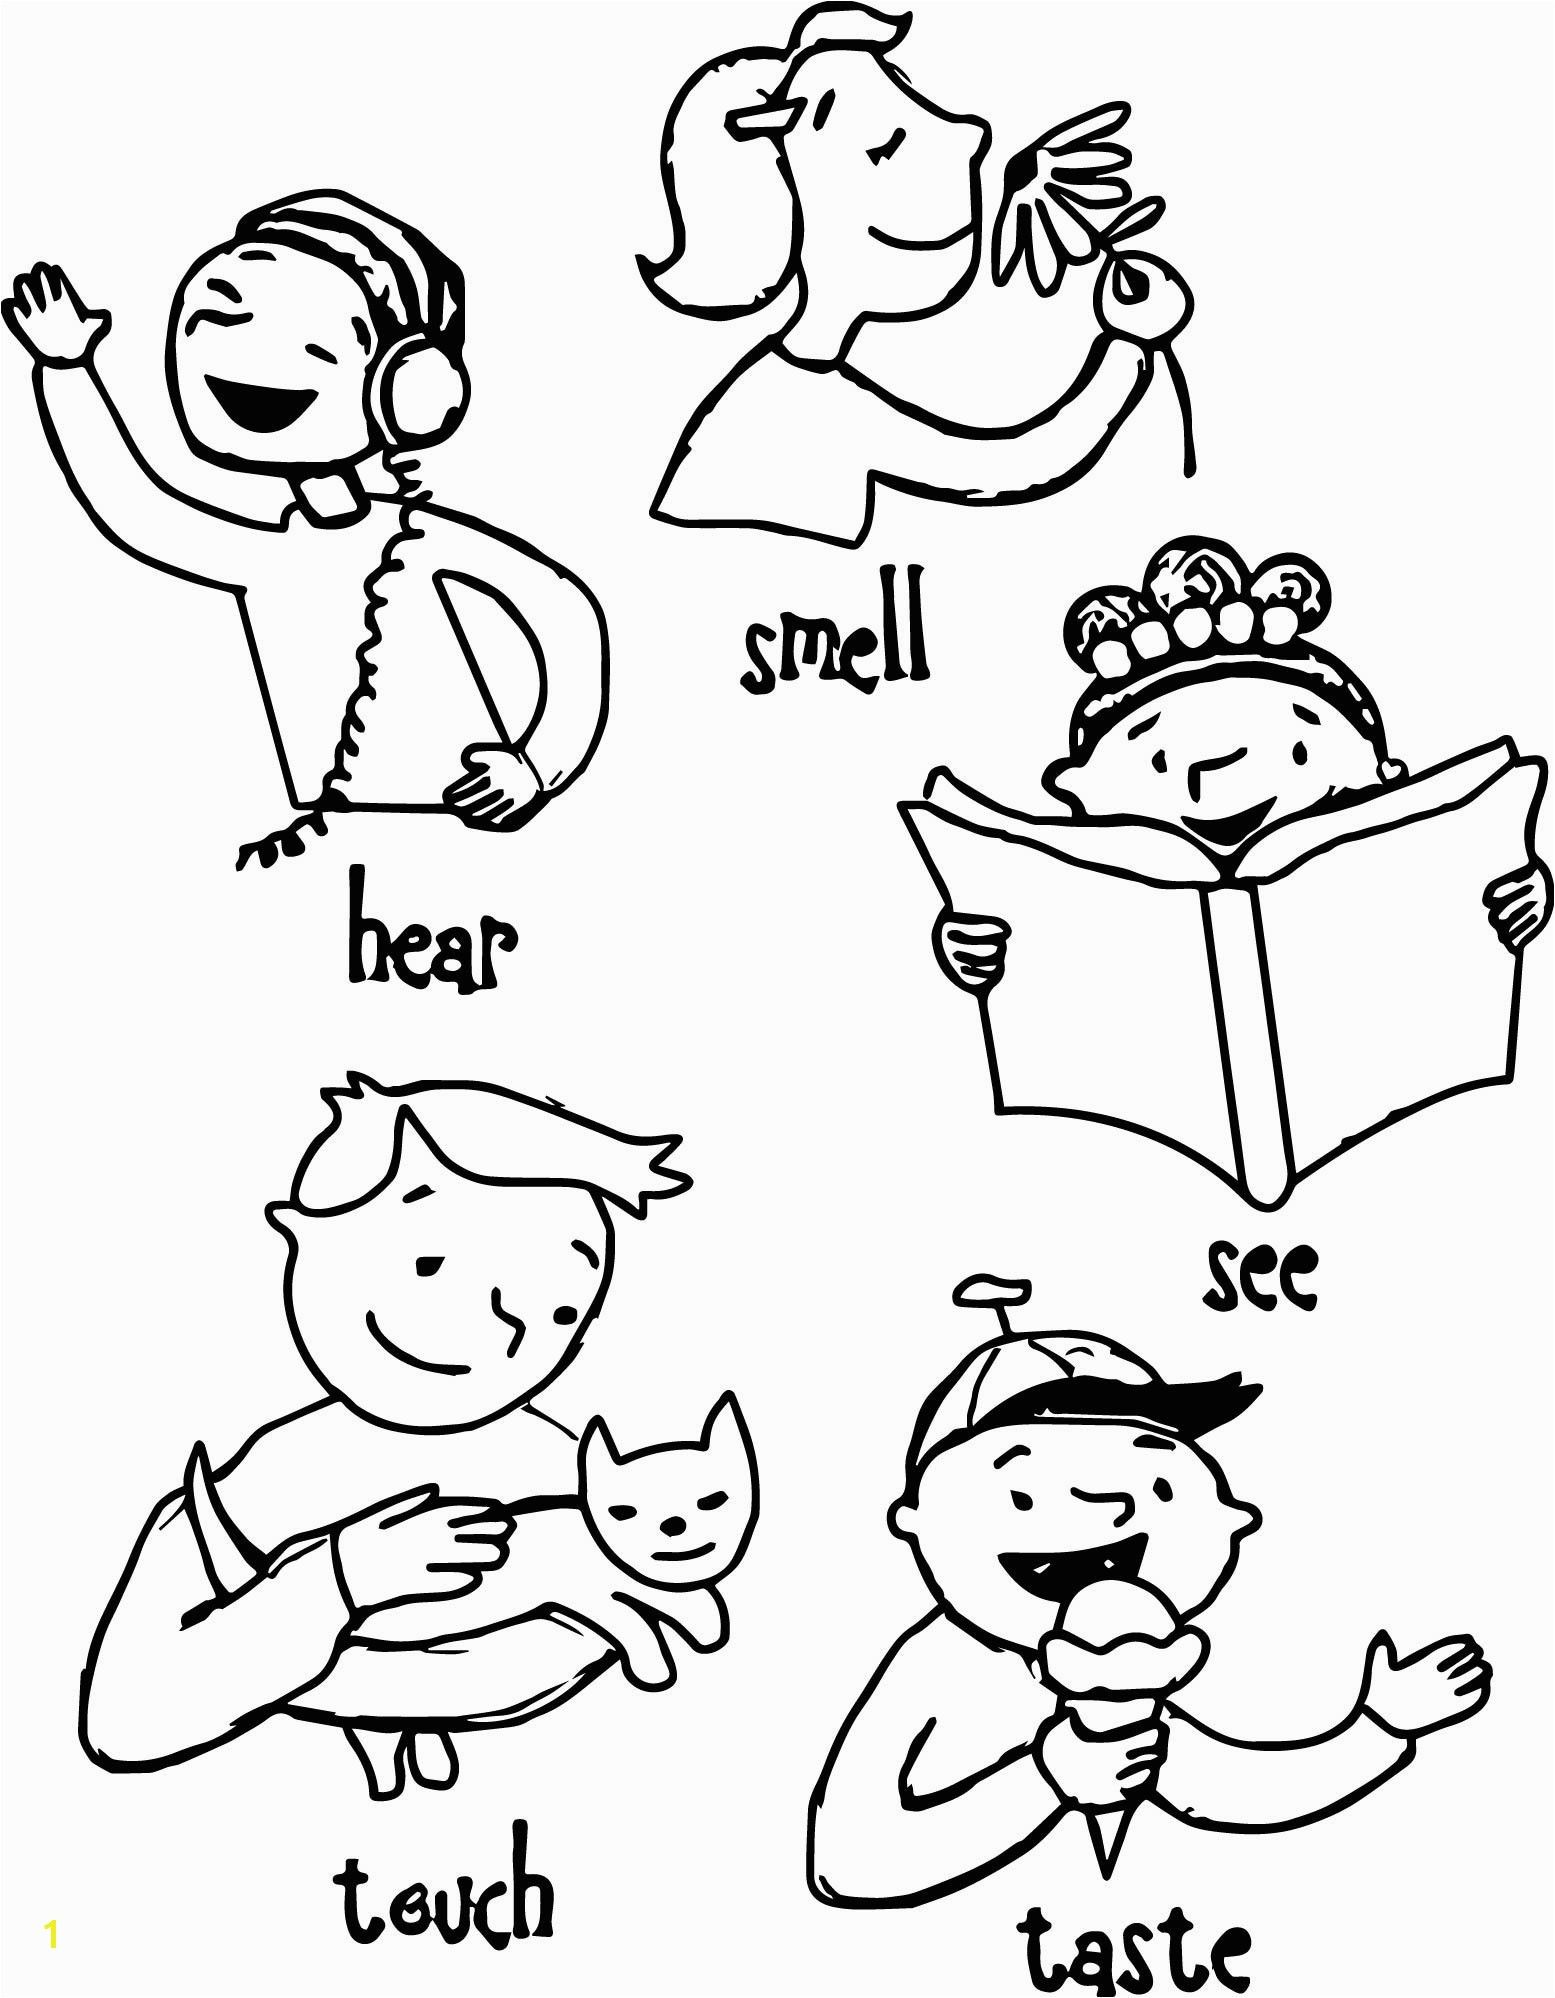 Five Senses Coloring Pages Free Five Senses Coloring Pages Fresh 5 Senses Coloring Pages